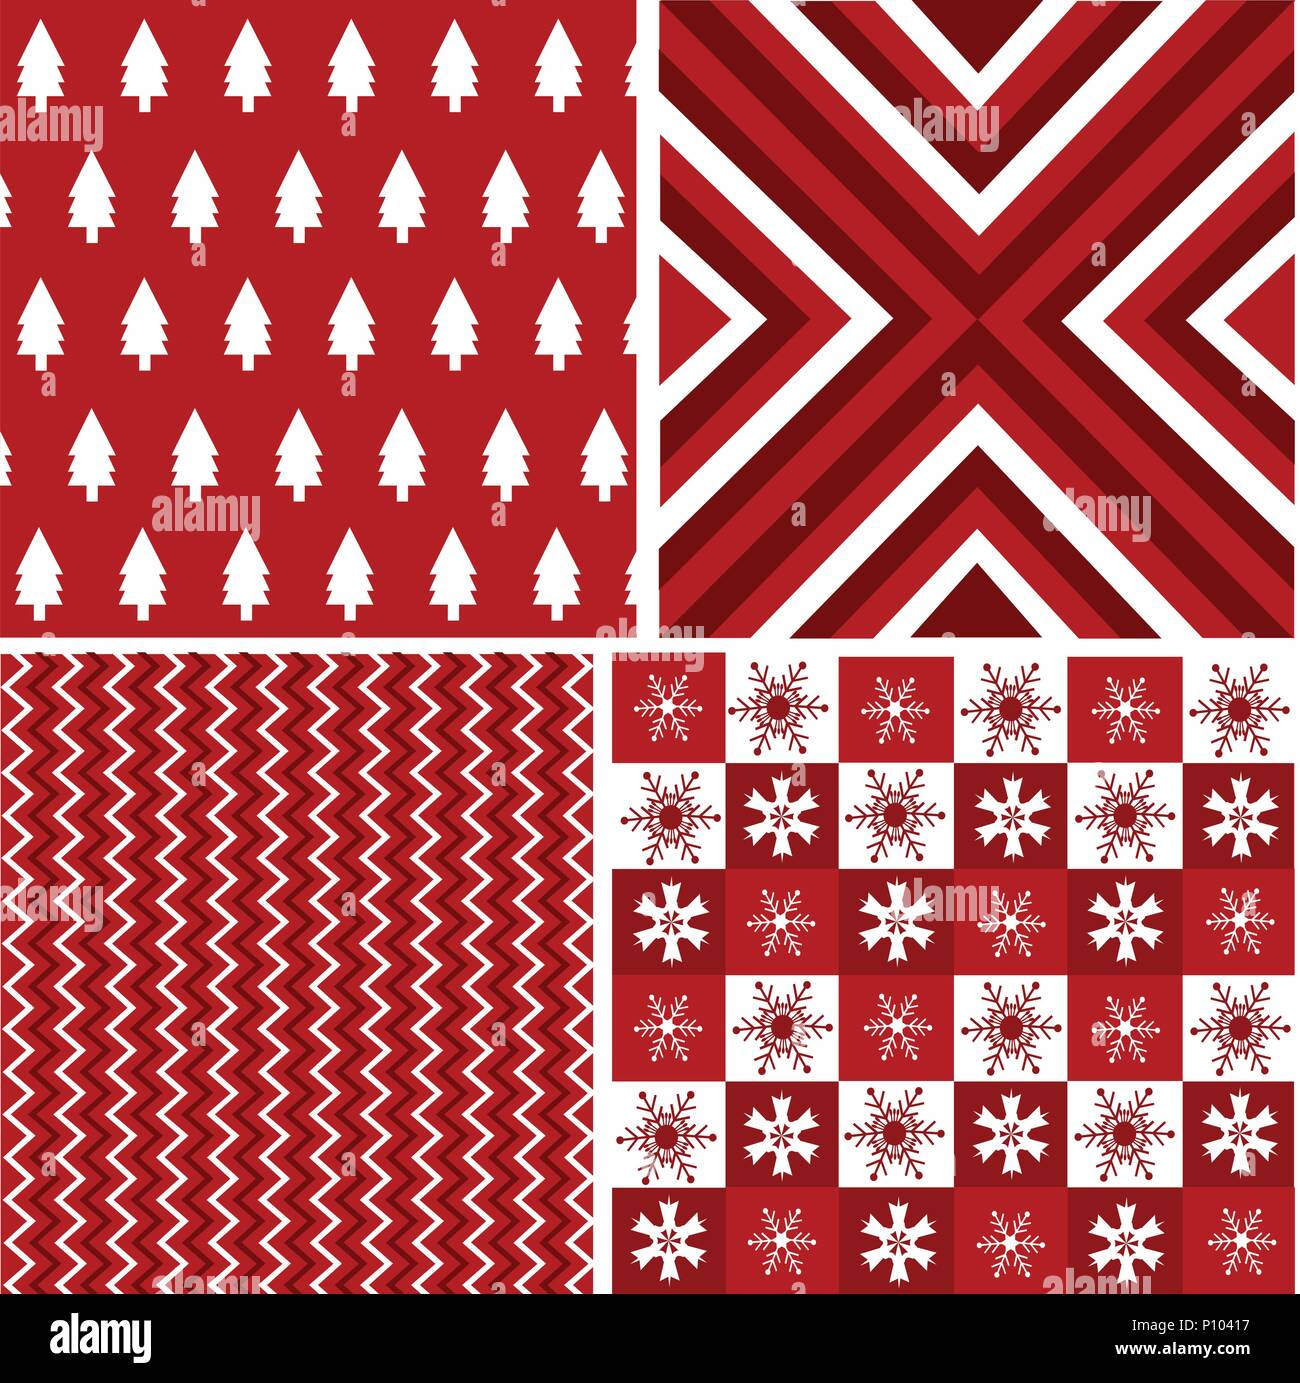 Christmas Texture.Seamless Patterns With Fabric Texture Christmas Texture